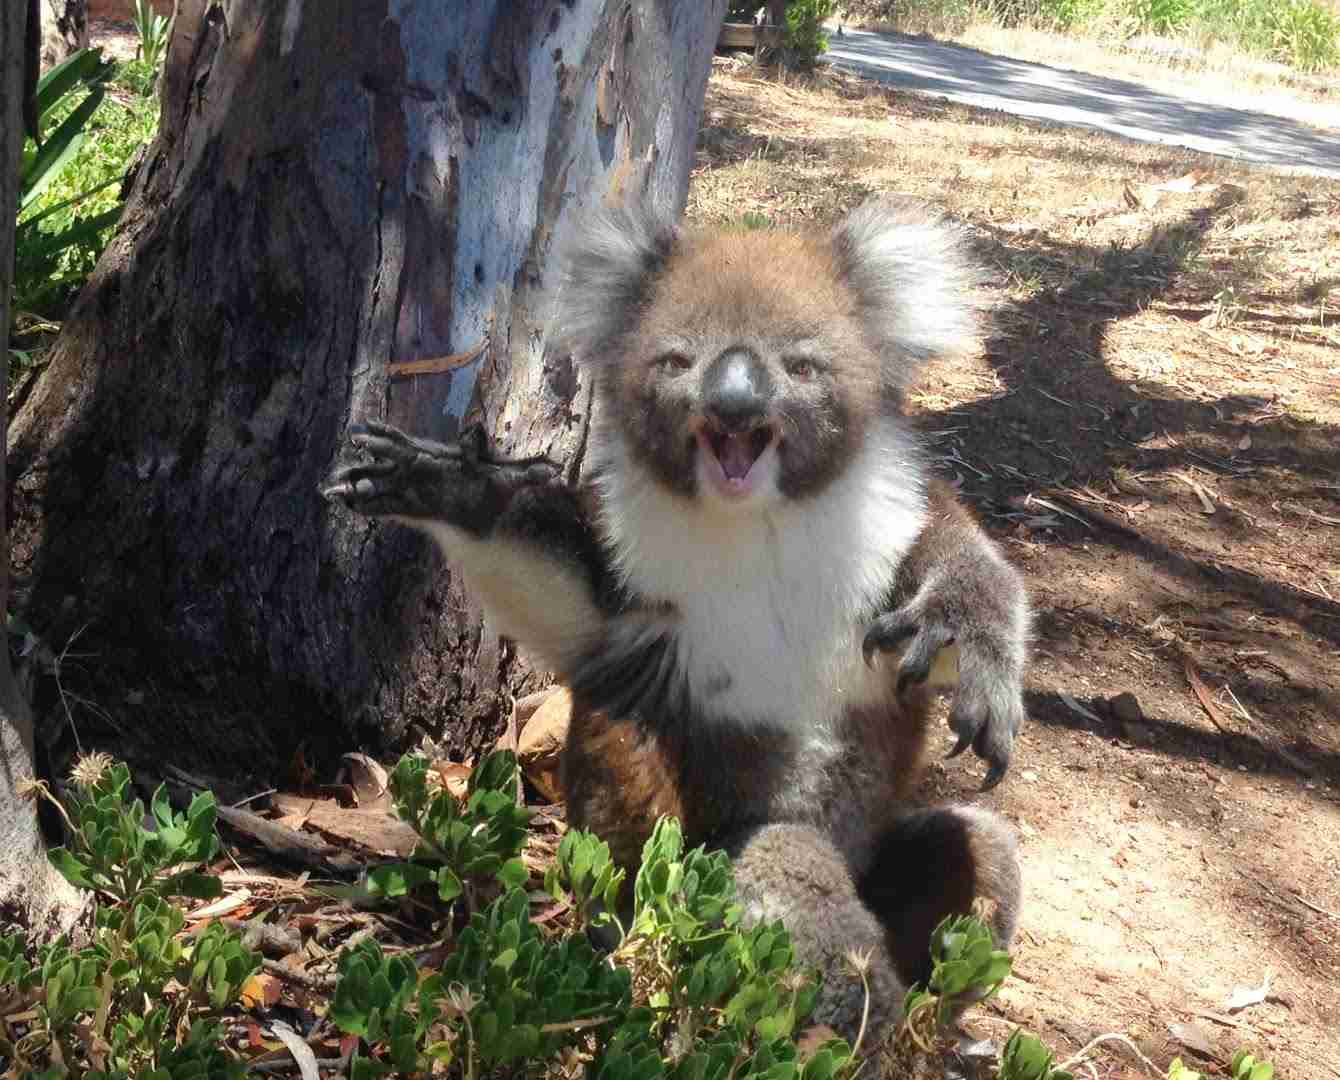 Koala Gets Kicked Out Of Tree and Cries! - YouTube